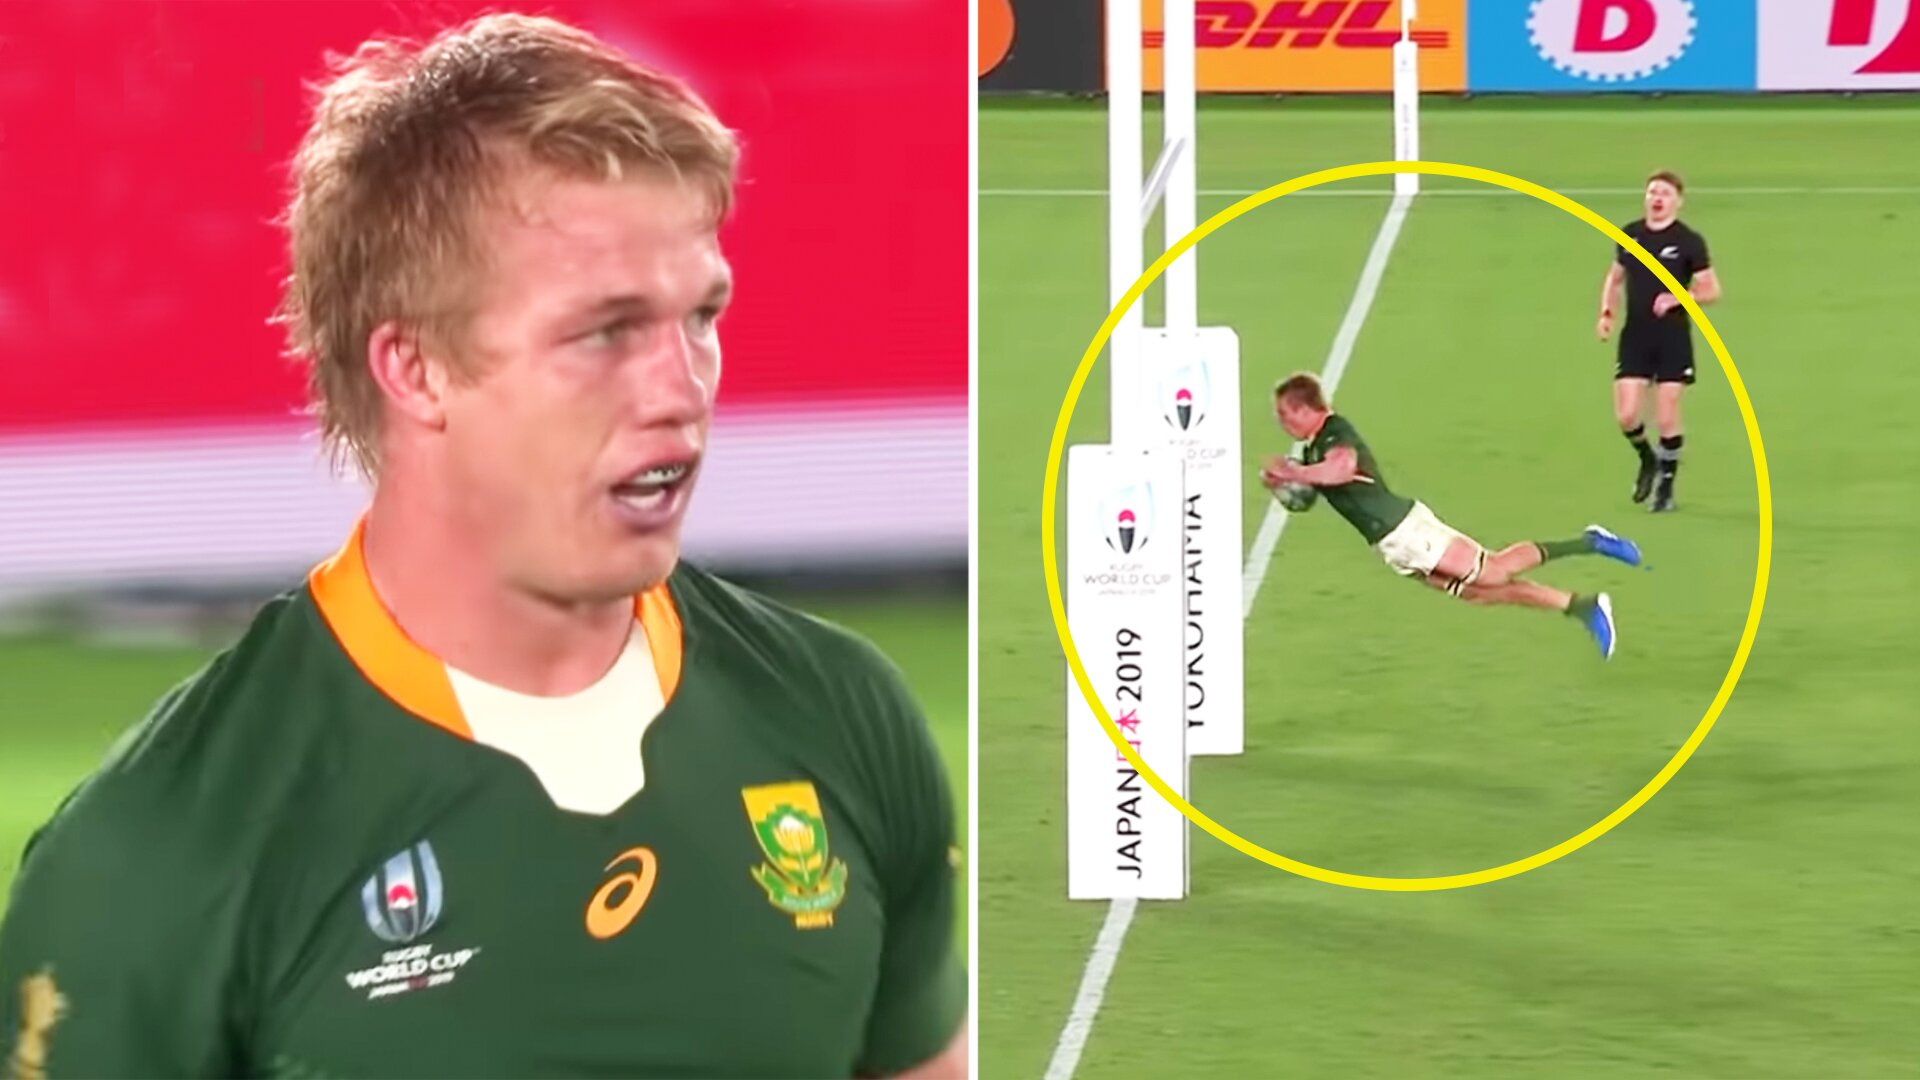 World Rugby release full match in which Pieter-Steph du Toit earned his World Player of the Year title